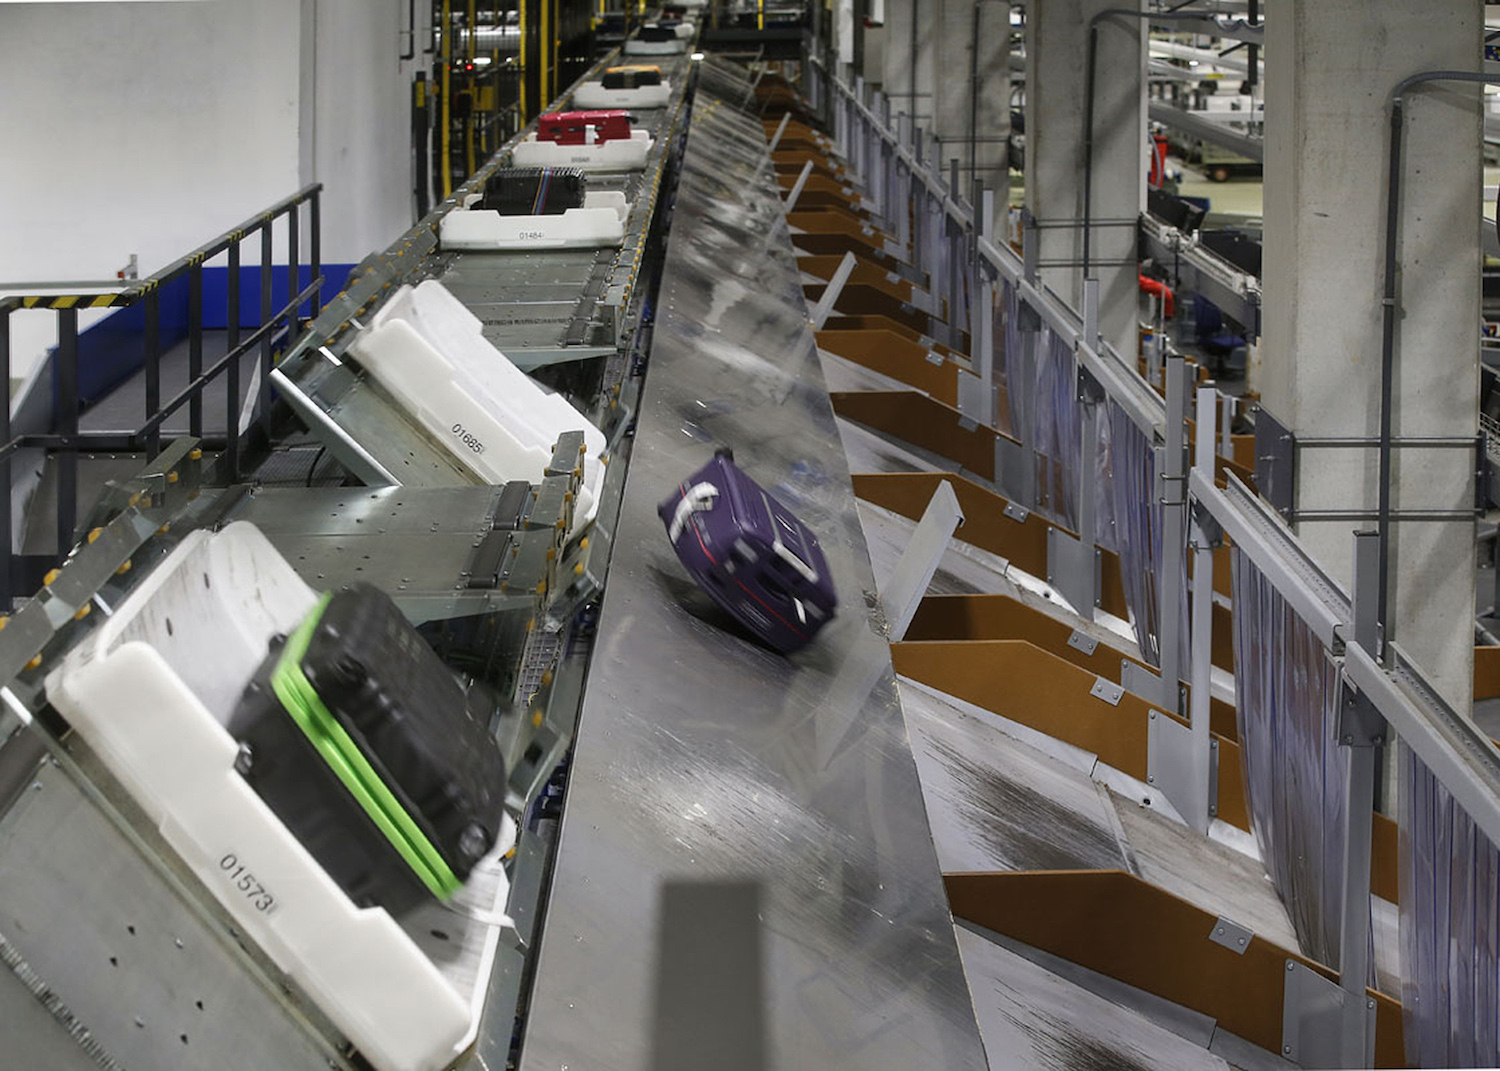 BEUMER Group's tote-based baggage handling solution the